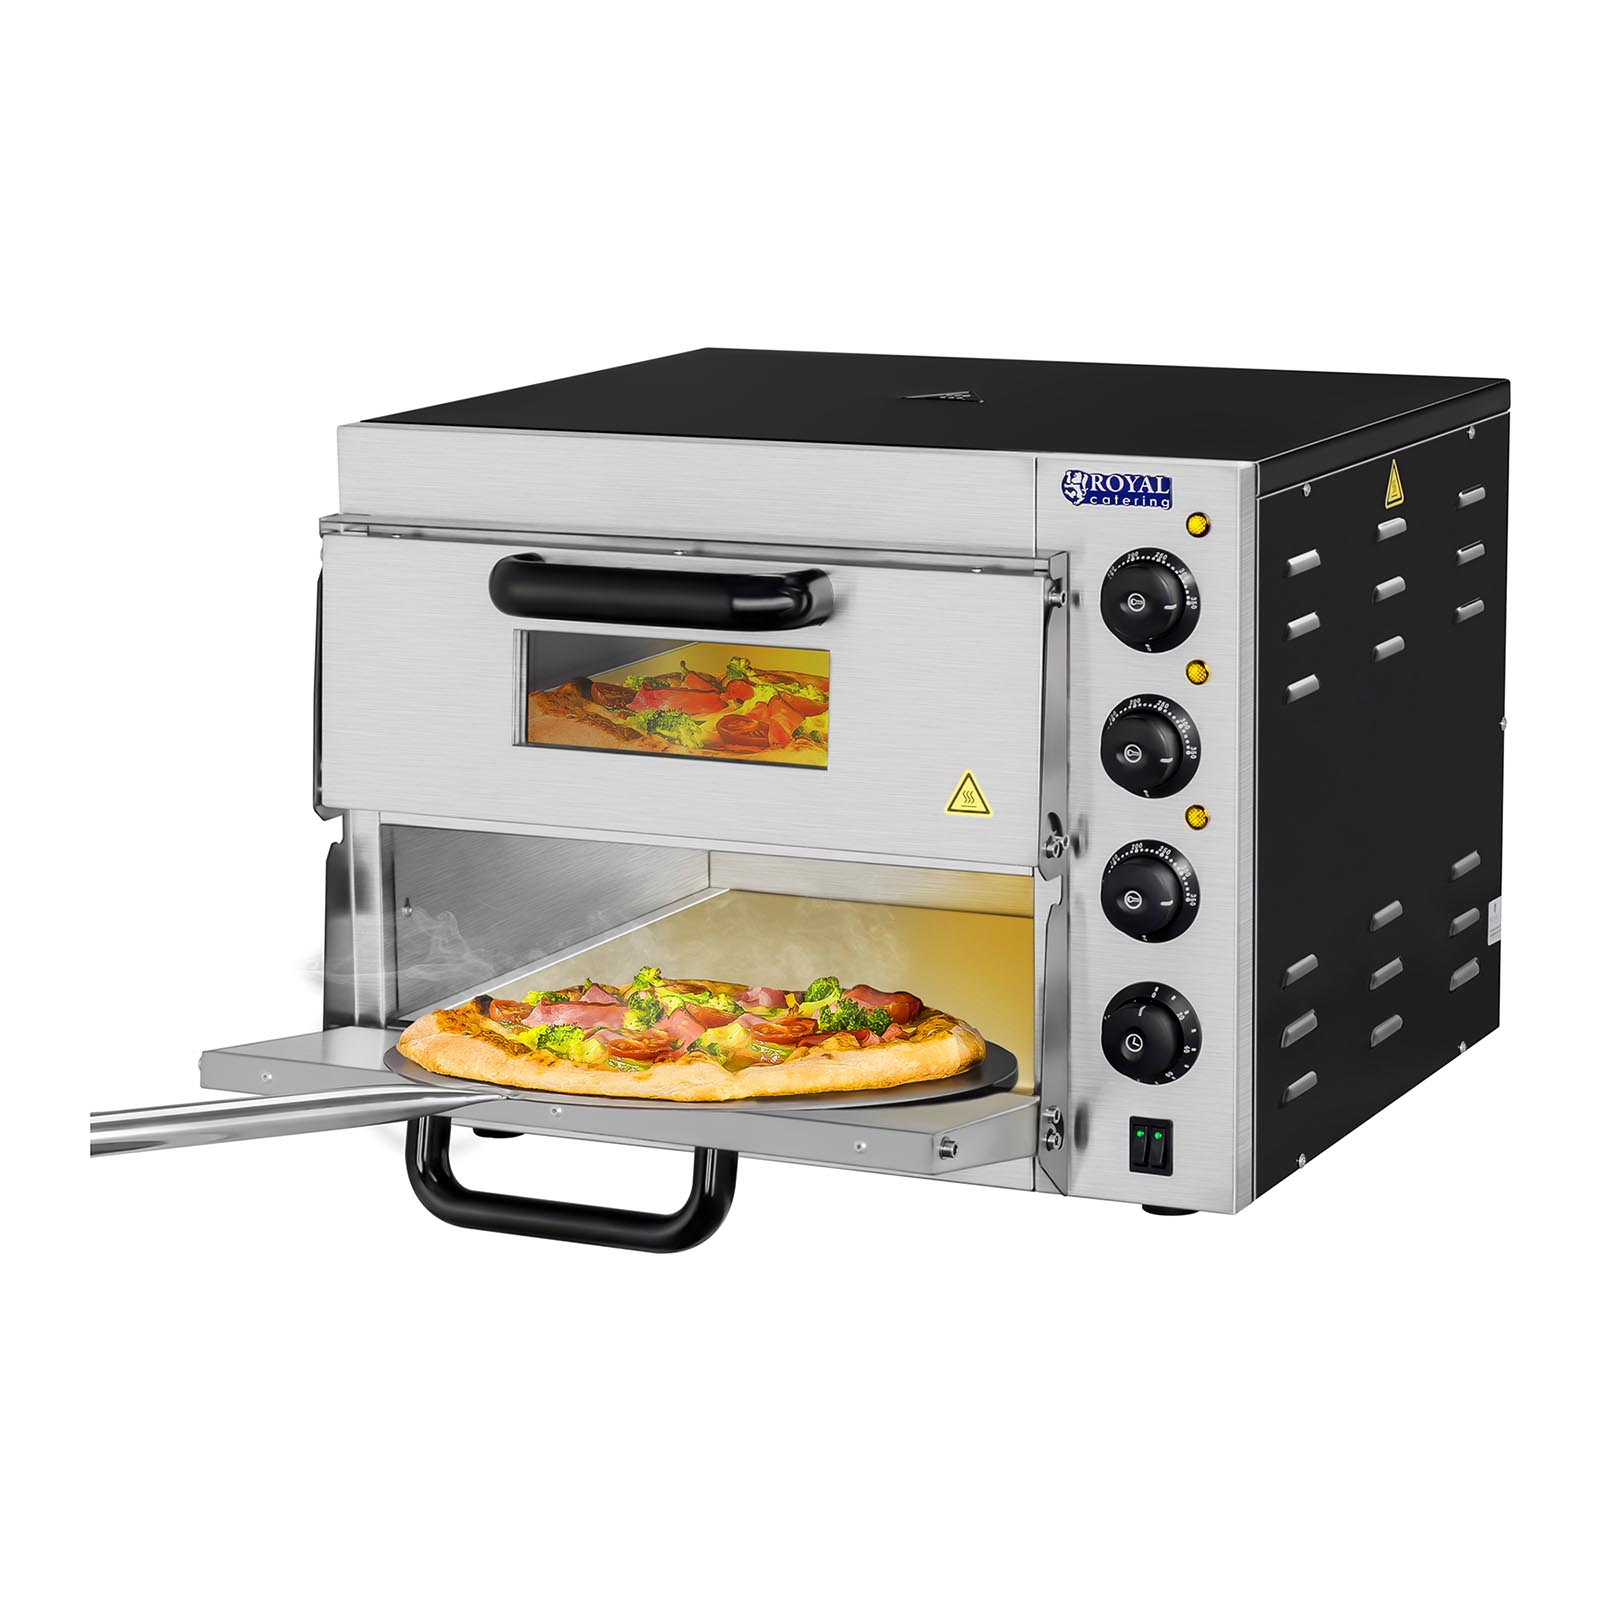 pizzaofen pizzabackofen pizza backofen flammkuchen flammkuchenbackofen gastro ebay. Black Bedroom Furniture Sets. Home Design Ideas